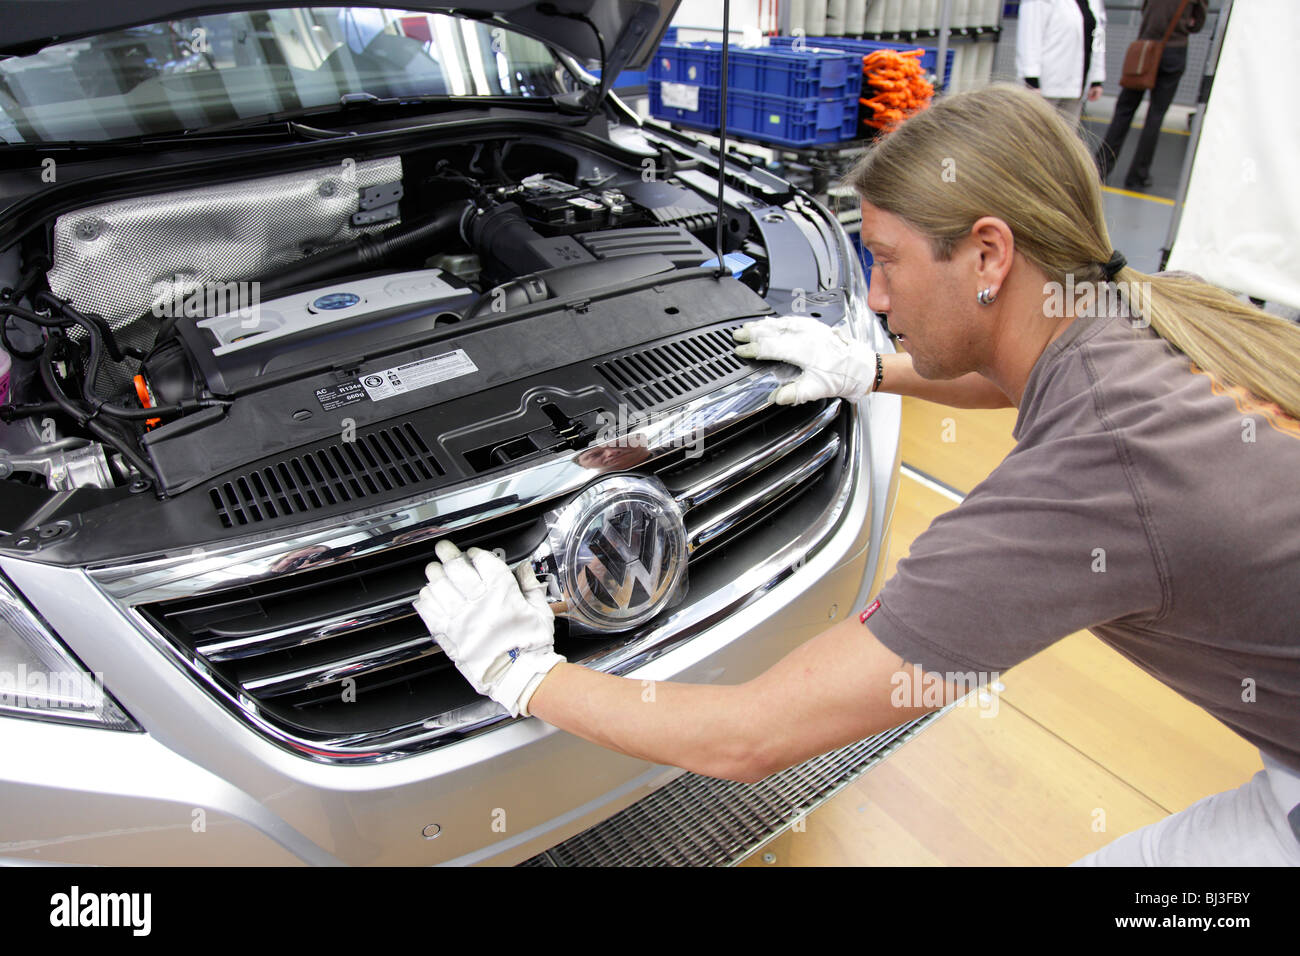 Volkswagen AG, production of passenger cars in the works in Wolfsburg. Final assembly of the VW Tiguan, Sport Utility - Stock Image